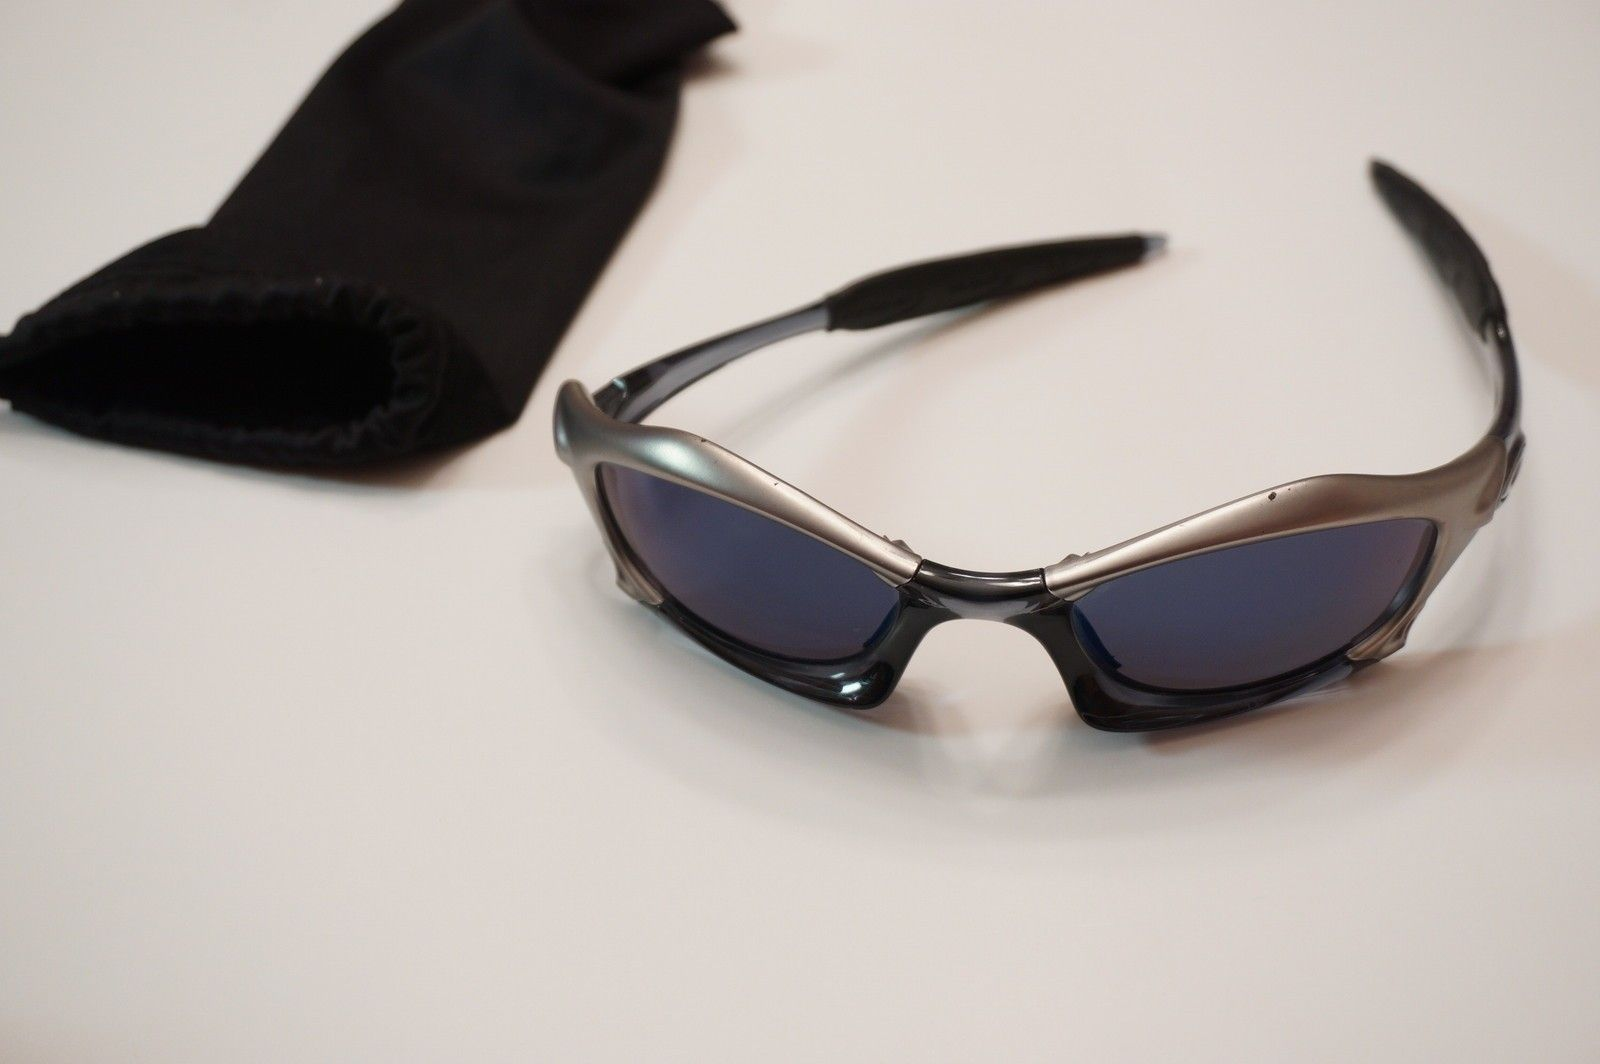 Half Jacket 2.0 Pol w/G30 and Splice Sunglasses.(SOLD) - DSC03117.JPG